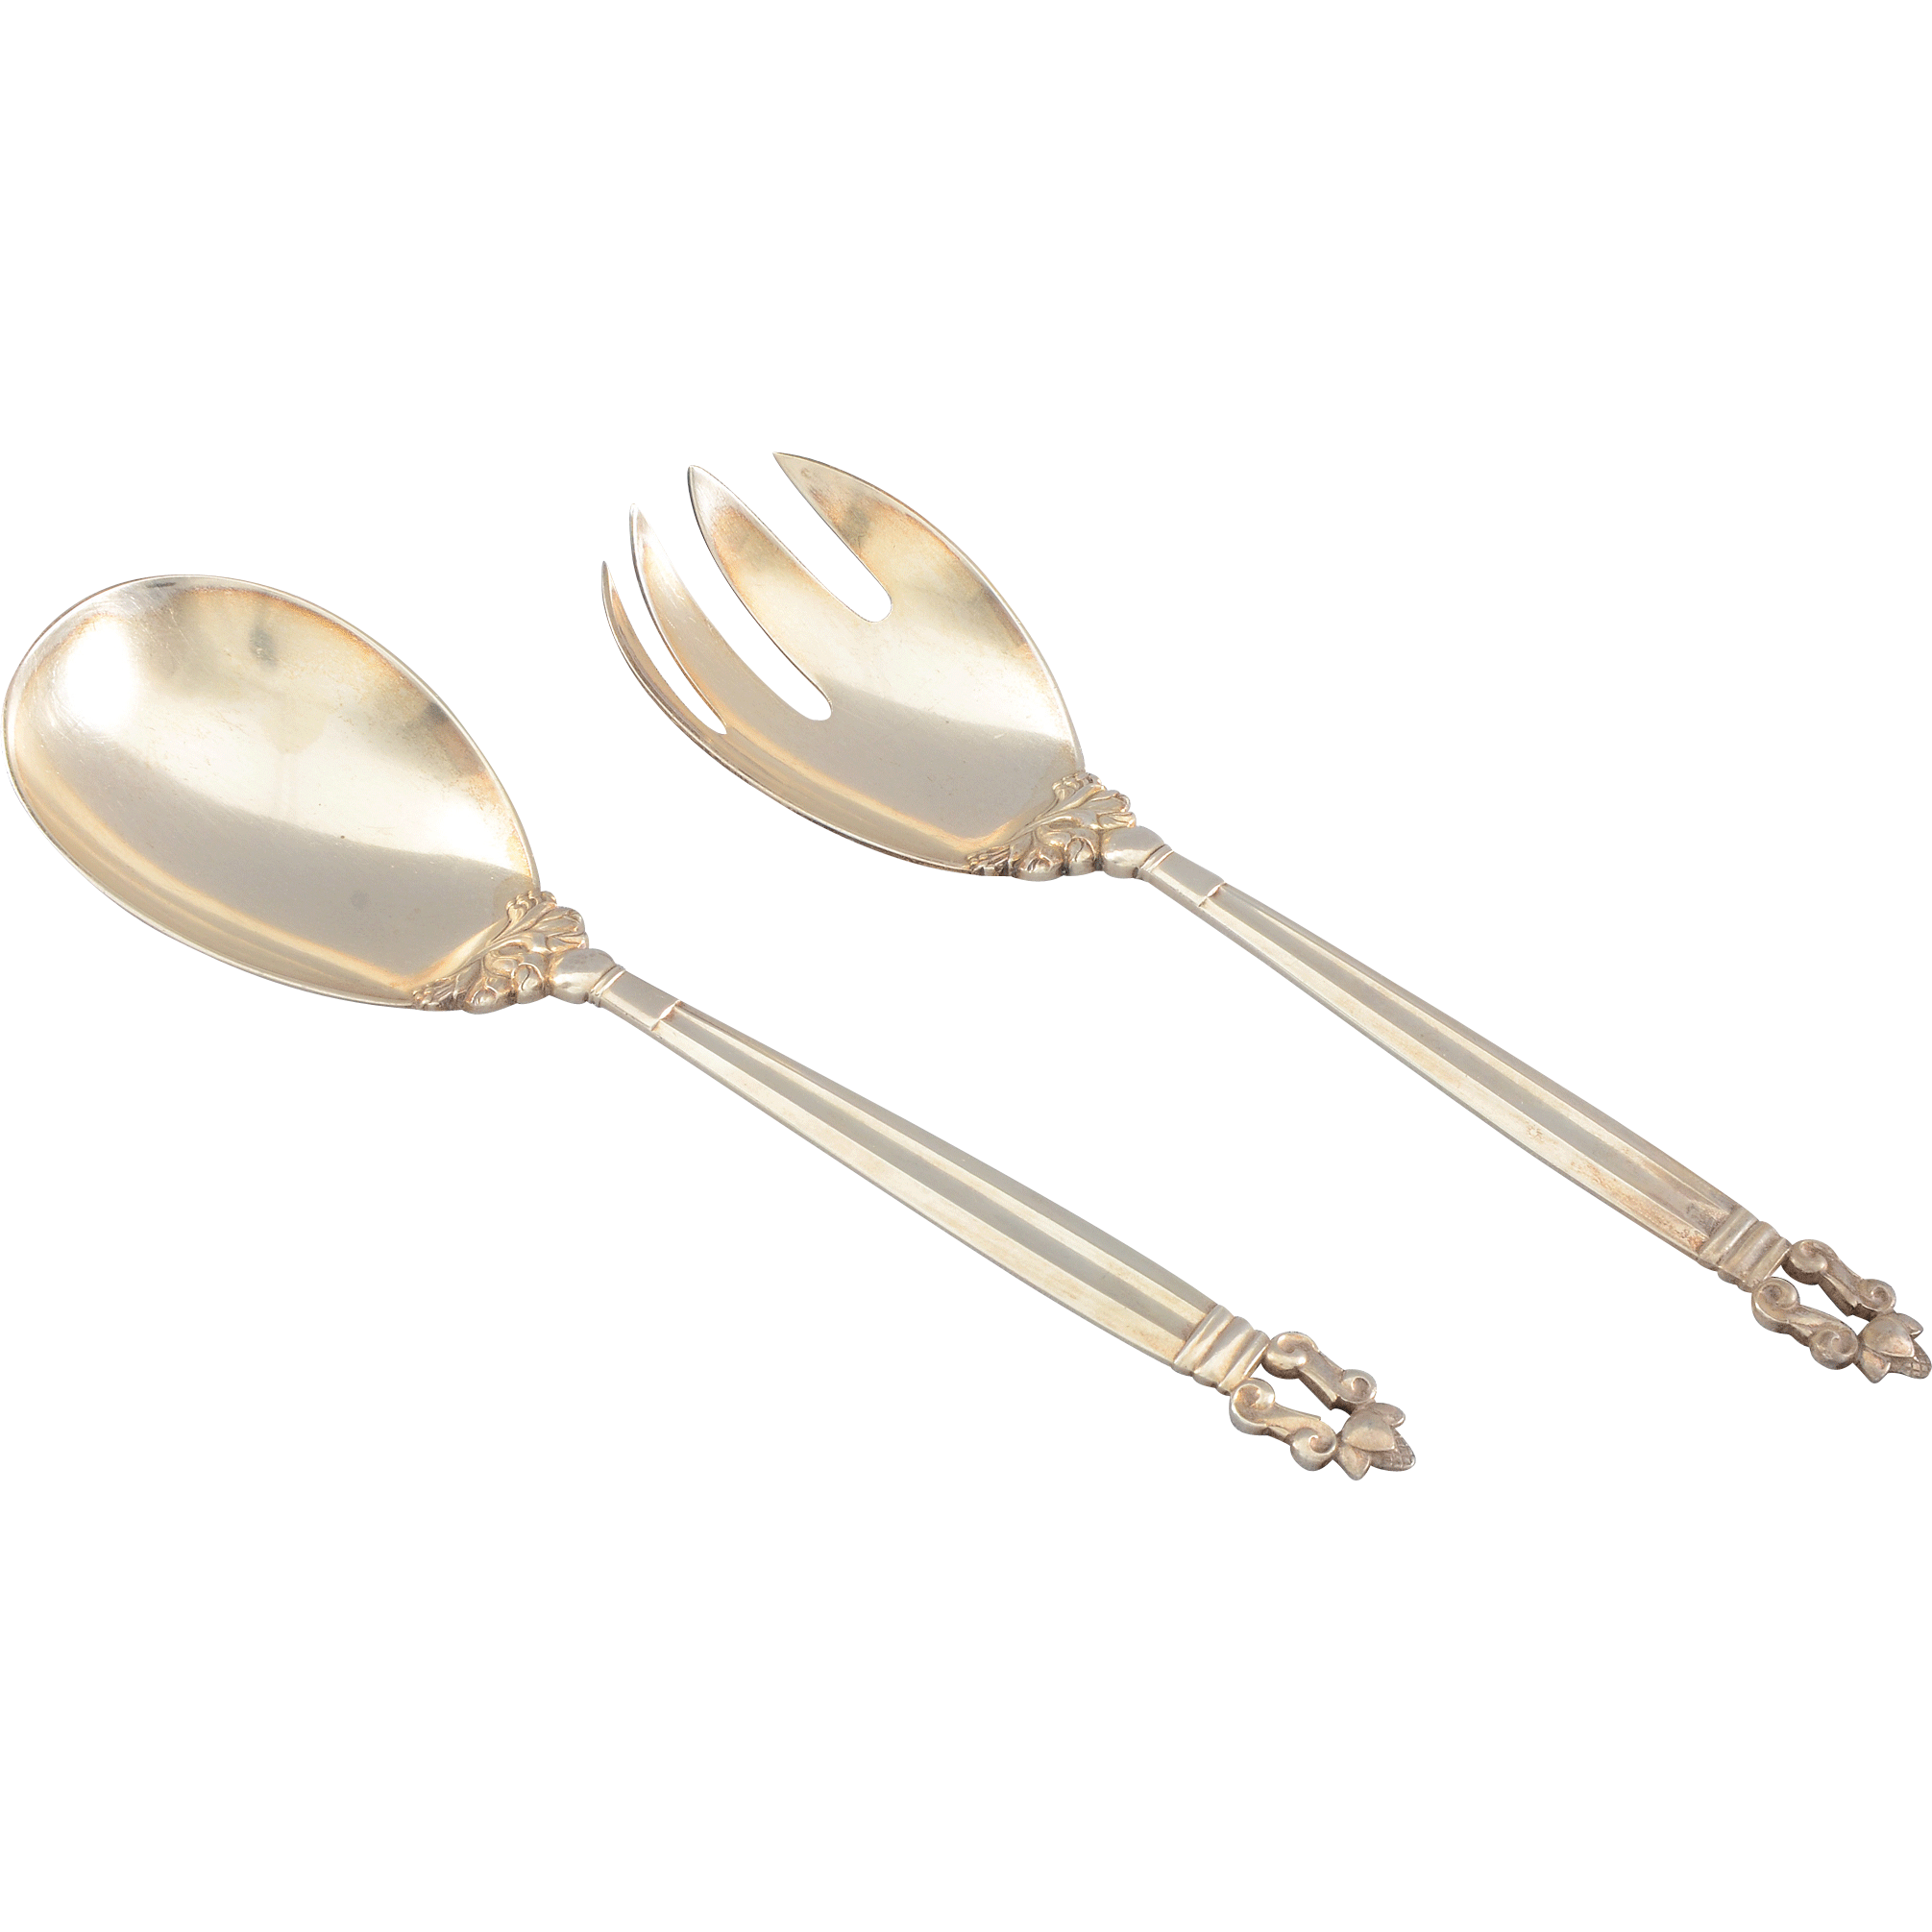 Danish Two Piece Sterling Salad Set by Georg Jensen